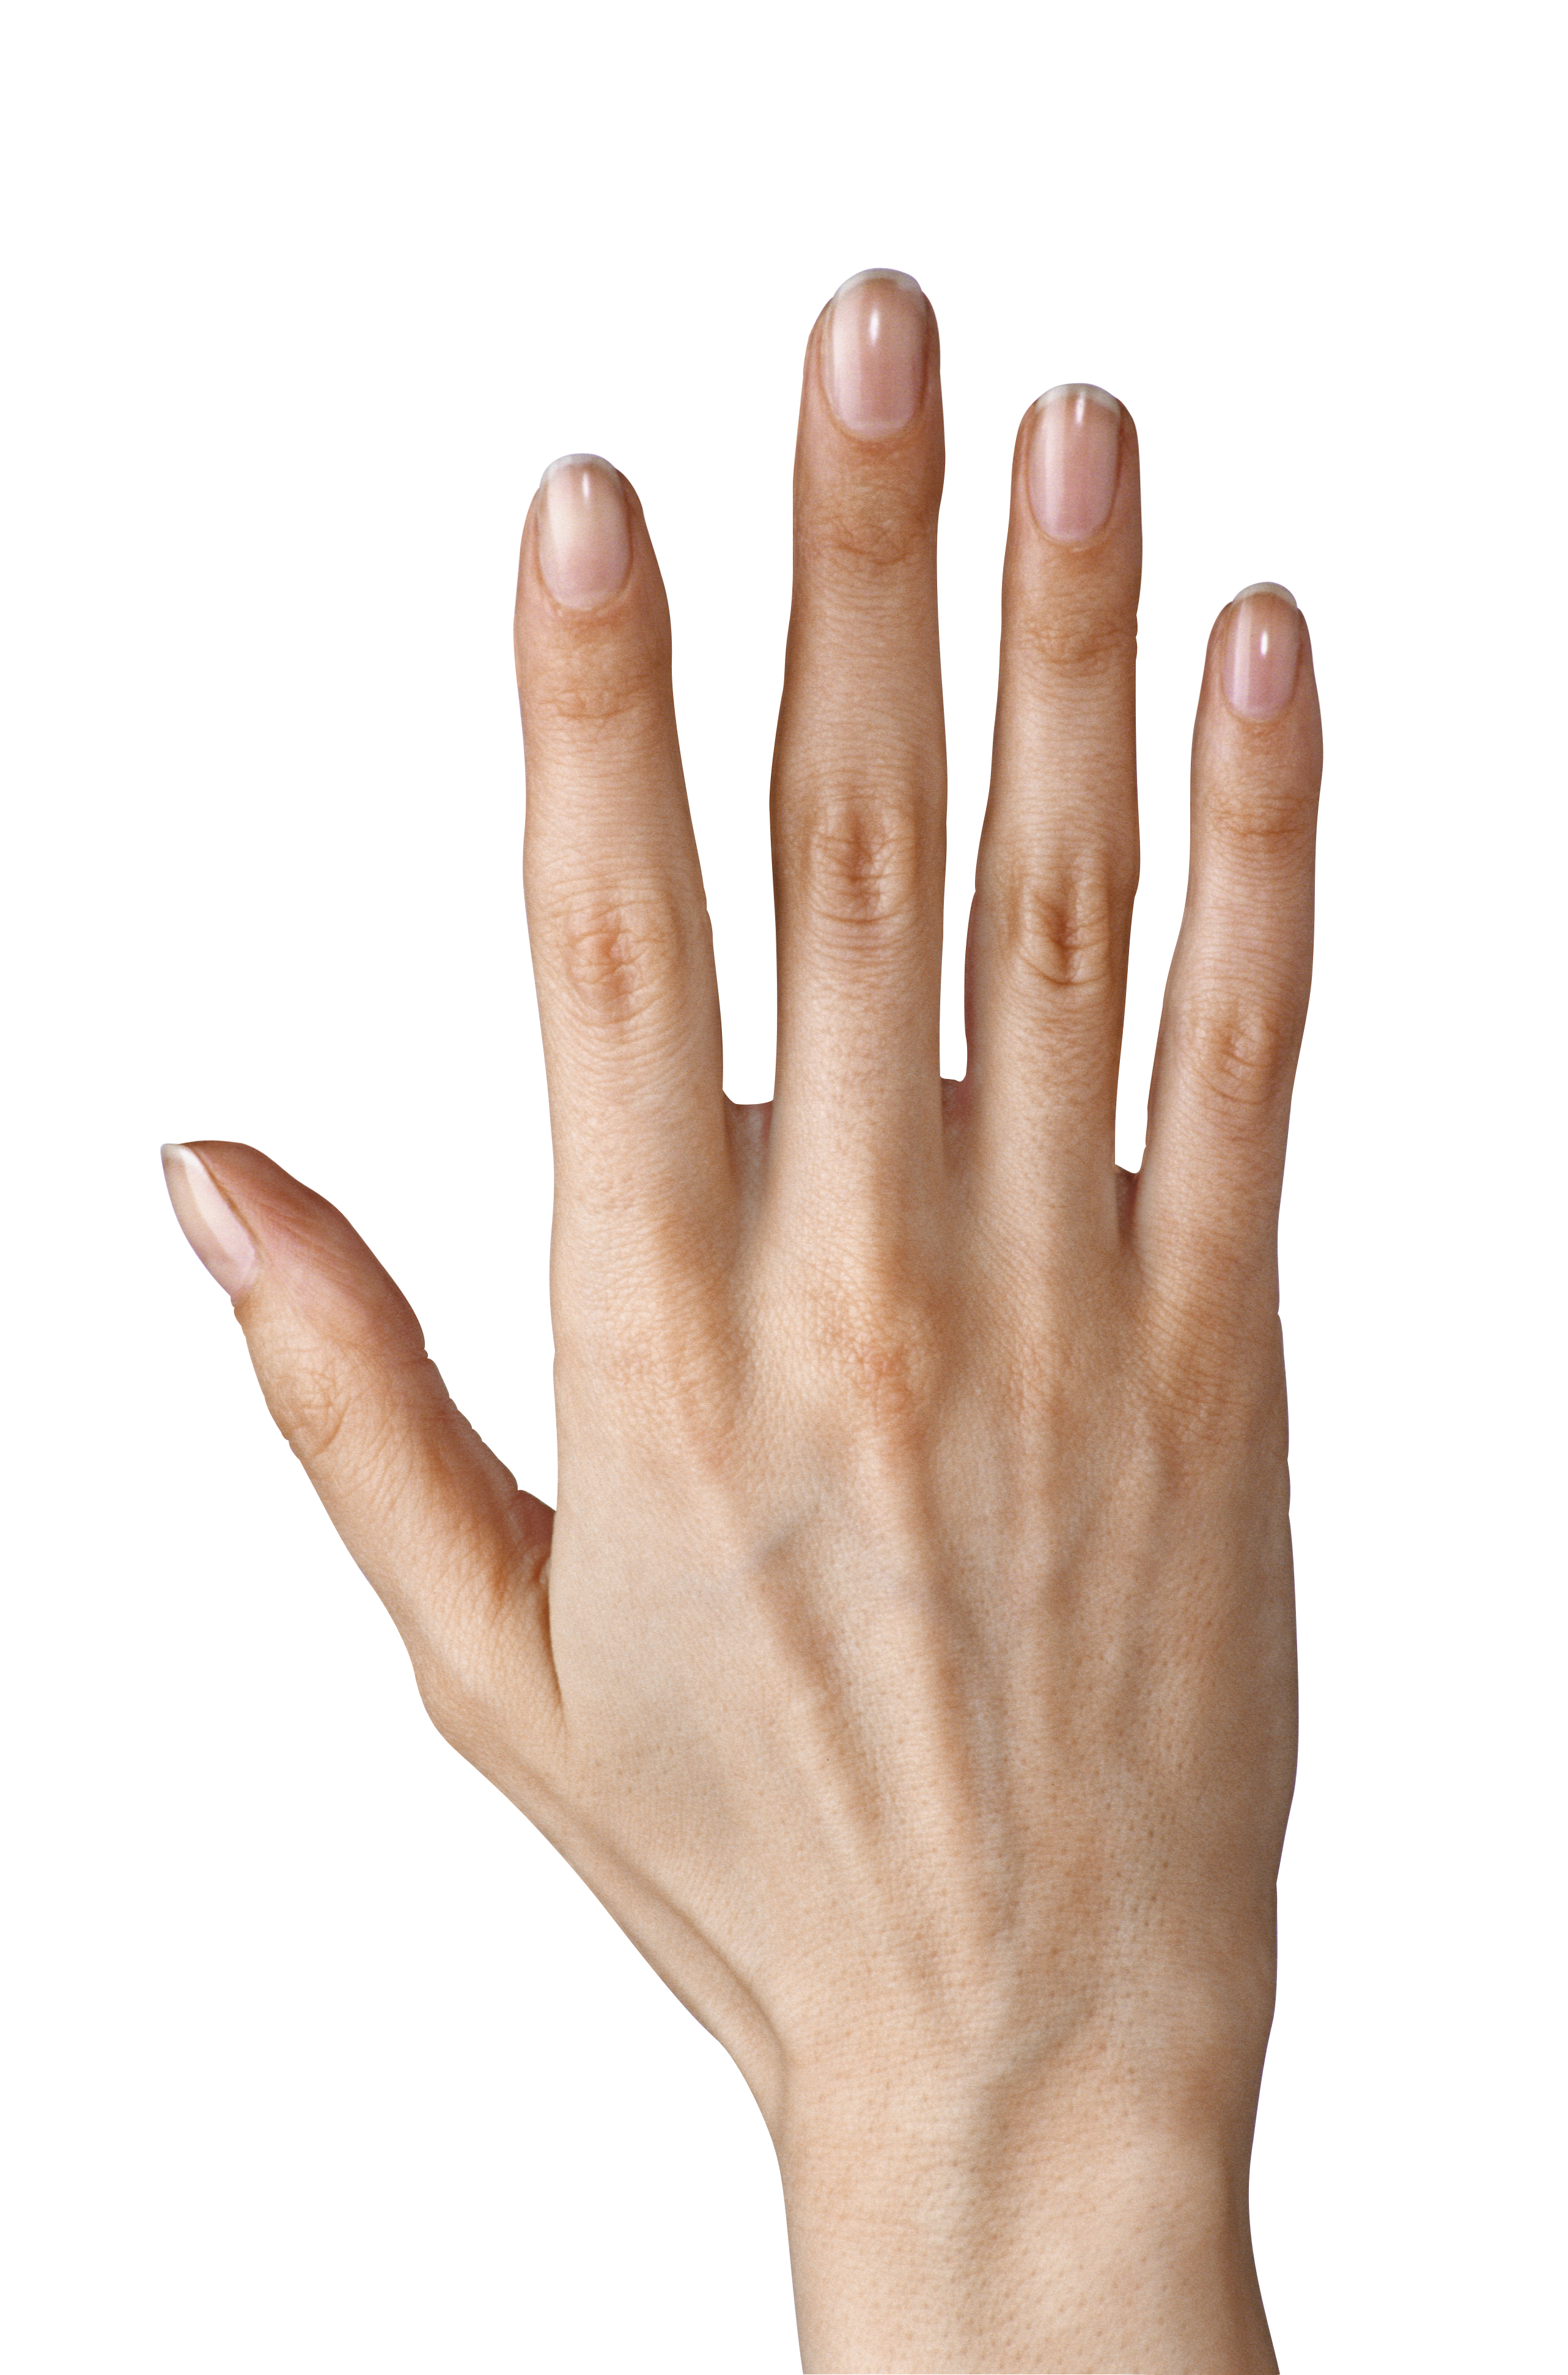 Showing five fingers clipart. Hand finger png clip art freeuse stock